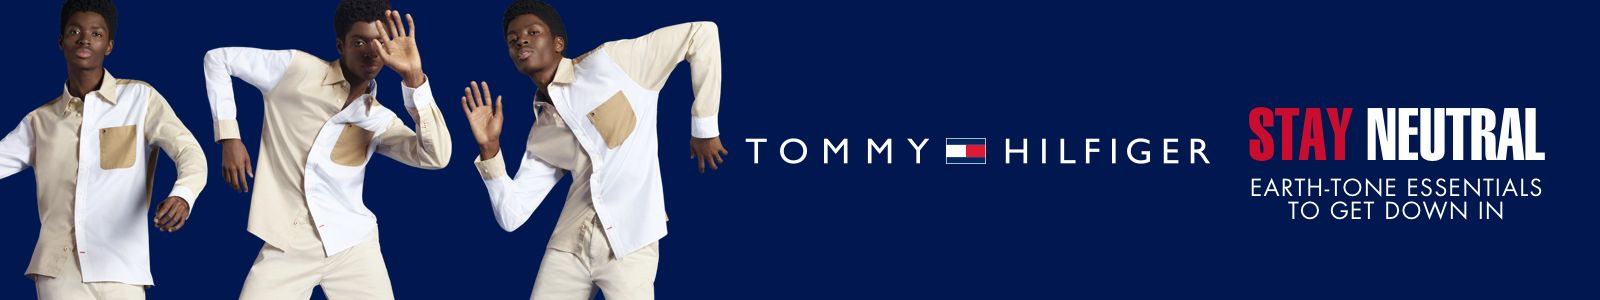 Tommy Hilfiger, Stay Neutral, Earth-Tone Essentials to Get Down in